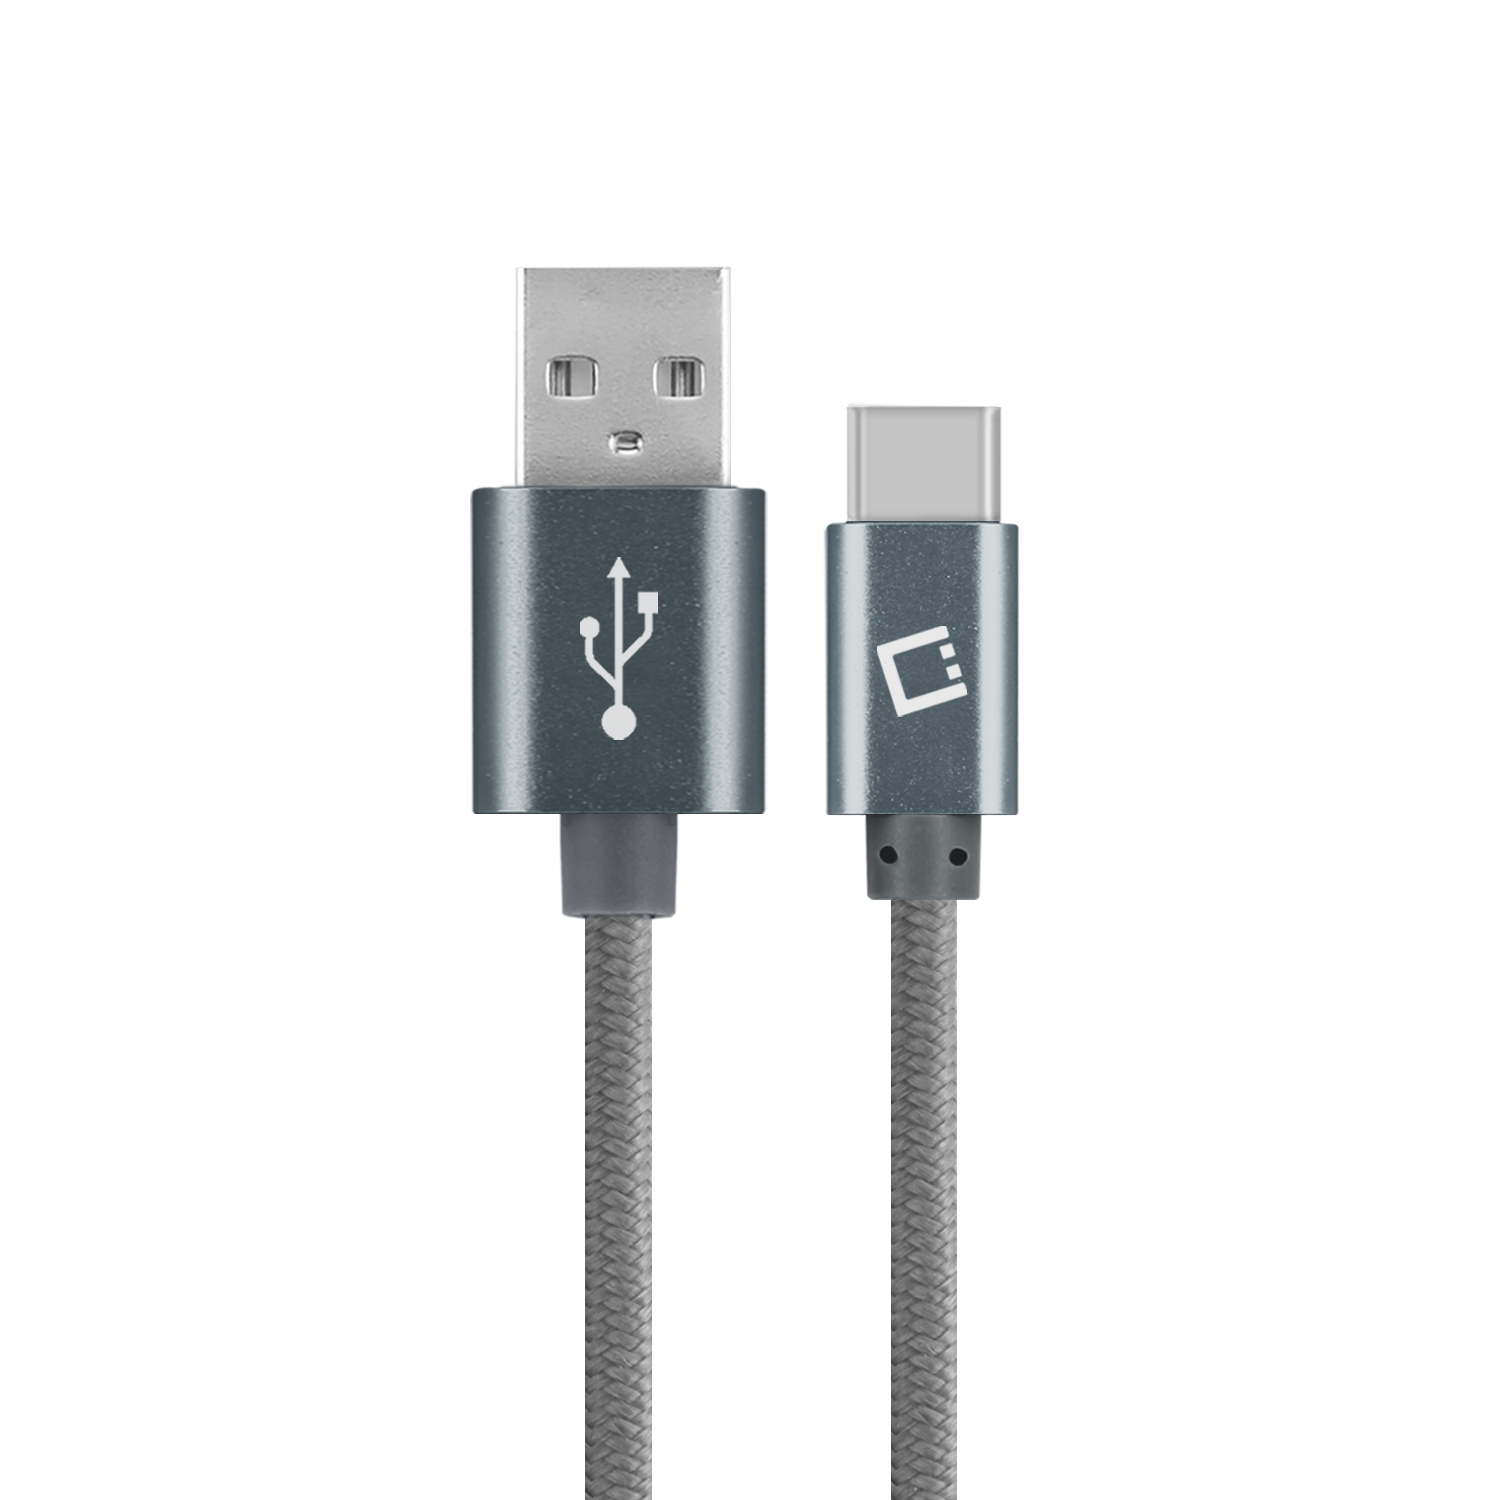 Samsung Galaxy A20 USB Type-C To Type-A Braided Data Power Cable Grey 4ft Braided